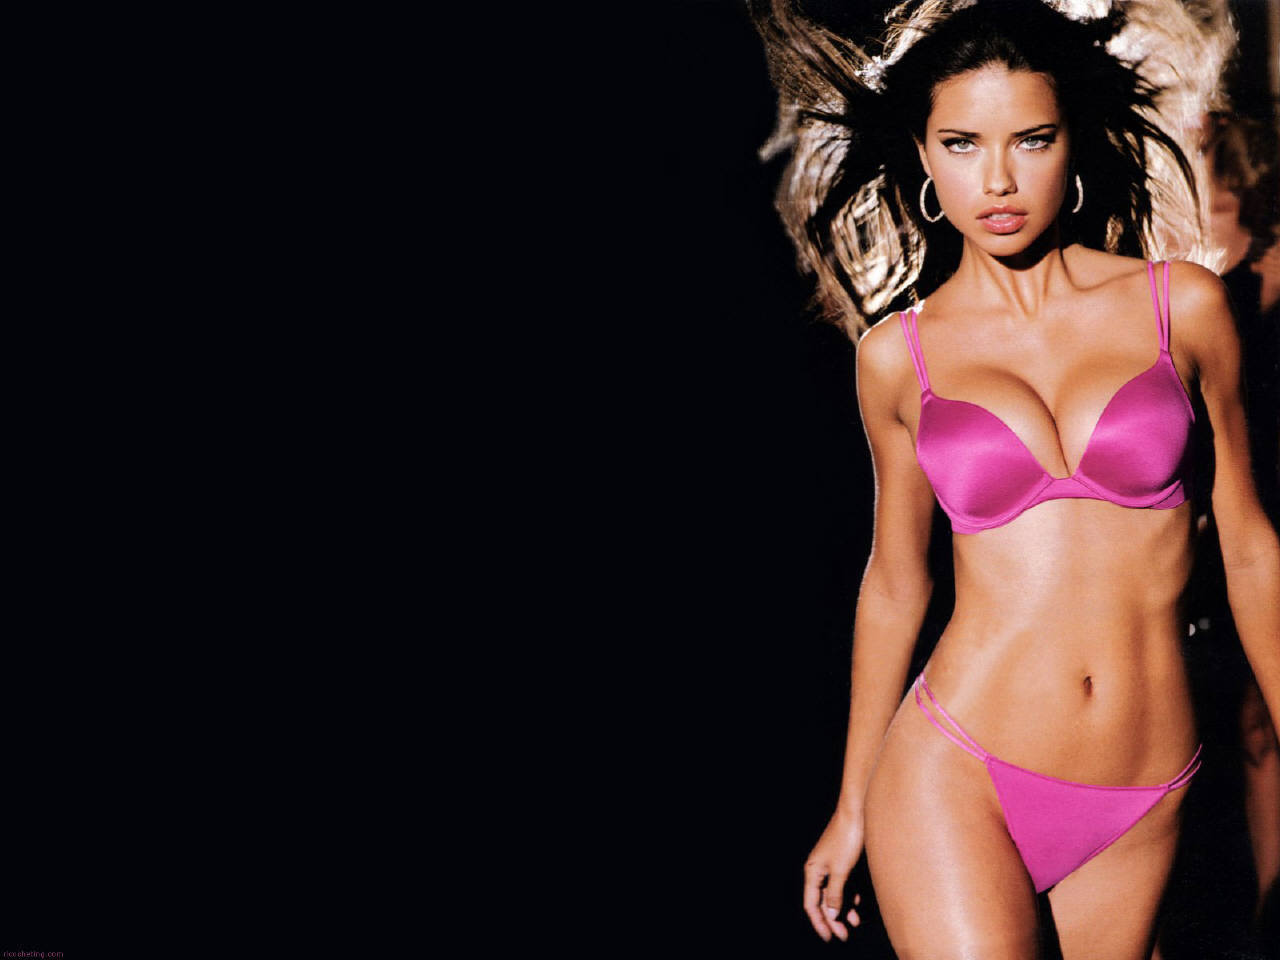 Adriana F Lima - Victoria's Secret Wallpaper (4000963) - Fanpop